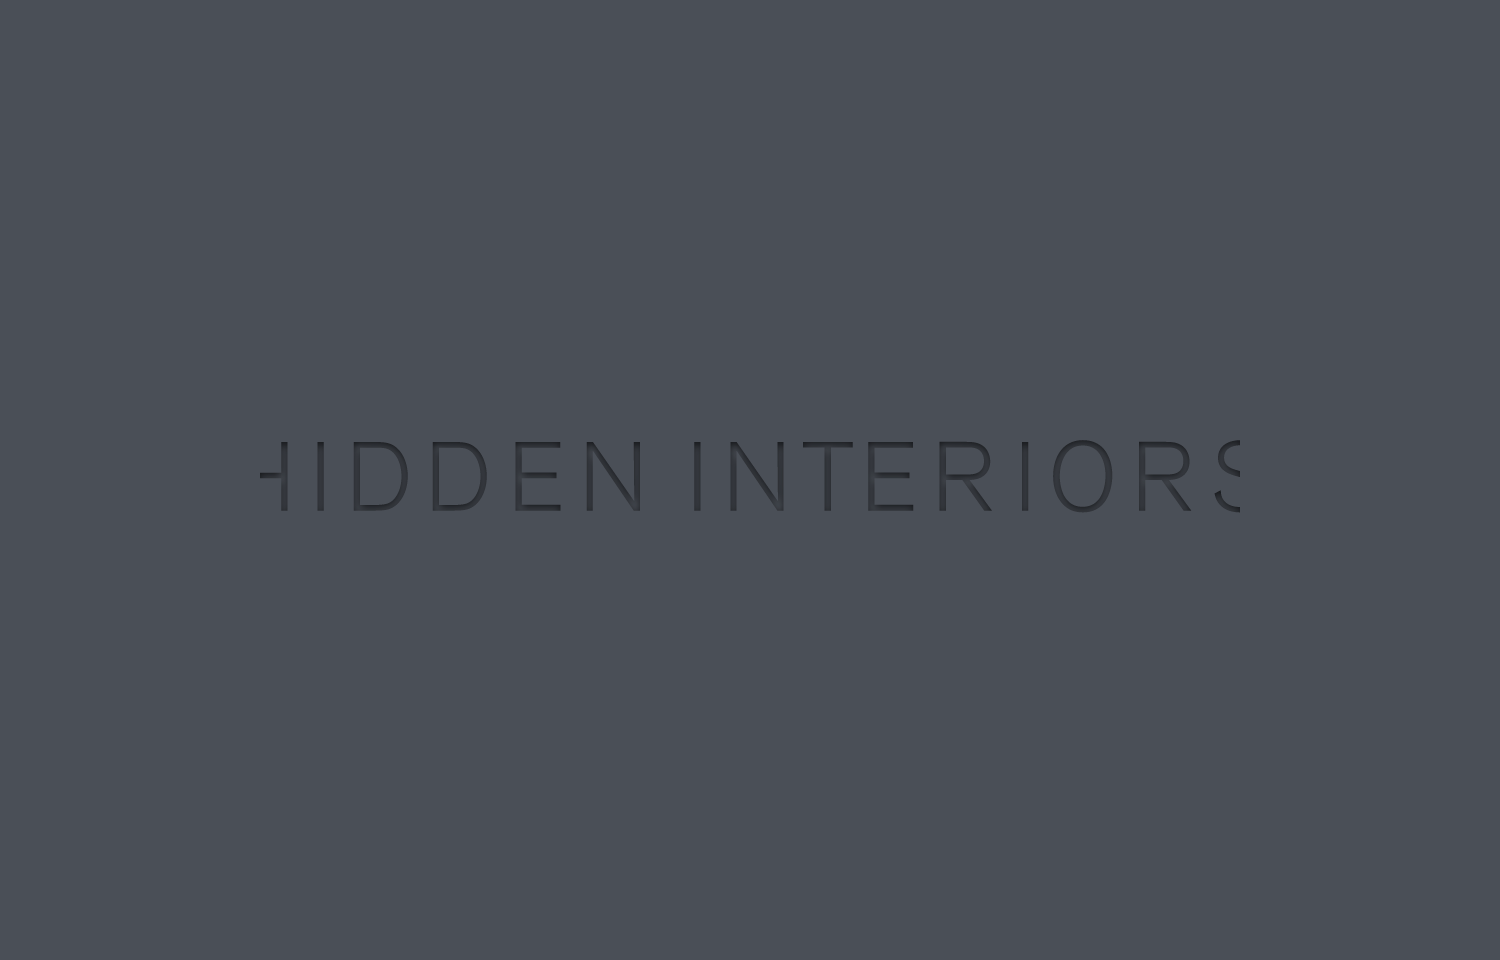 Hidden Interiors logo design, grey on grey.